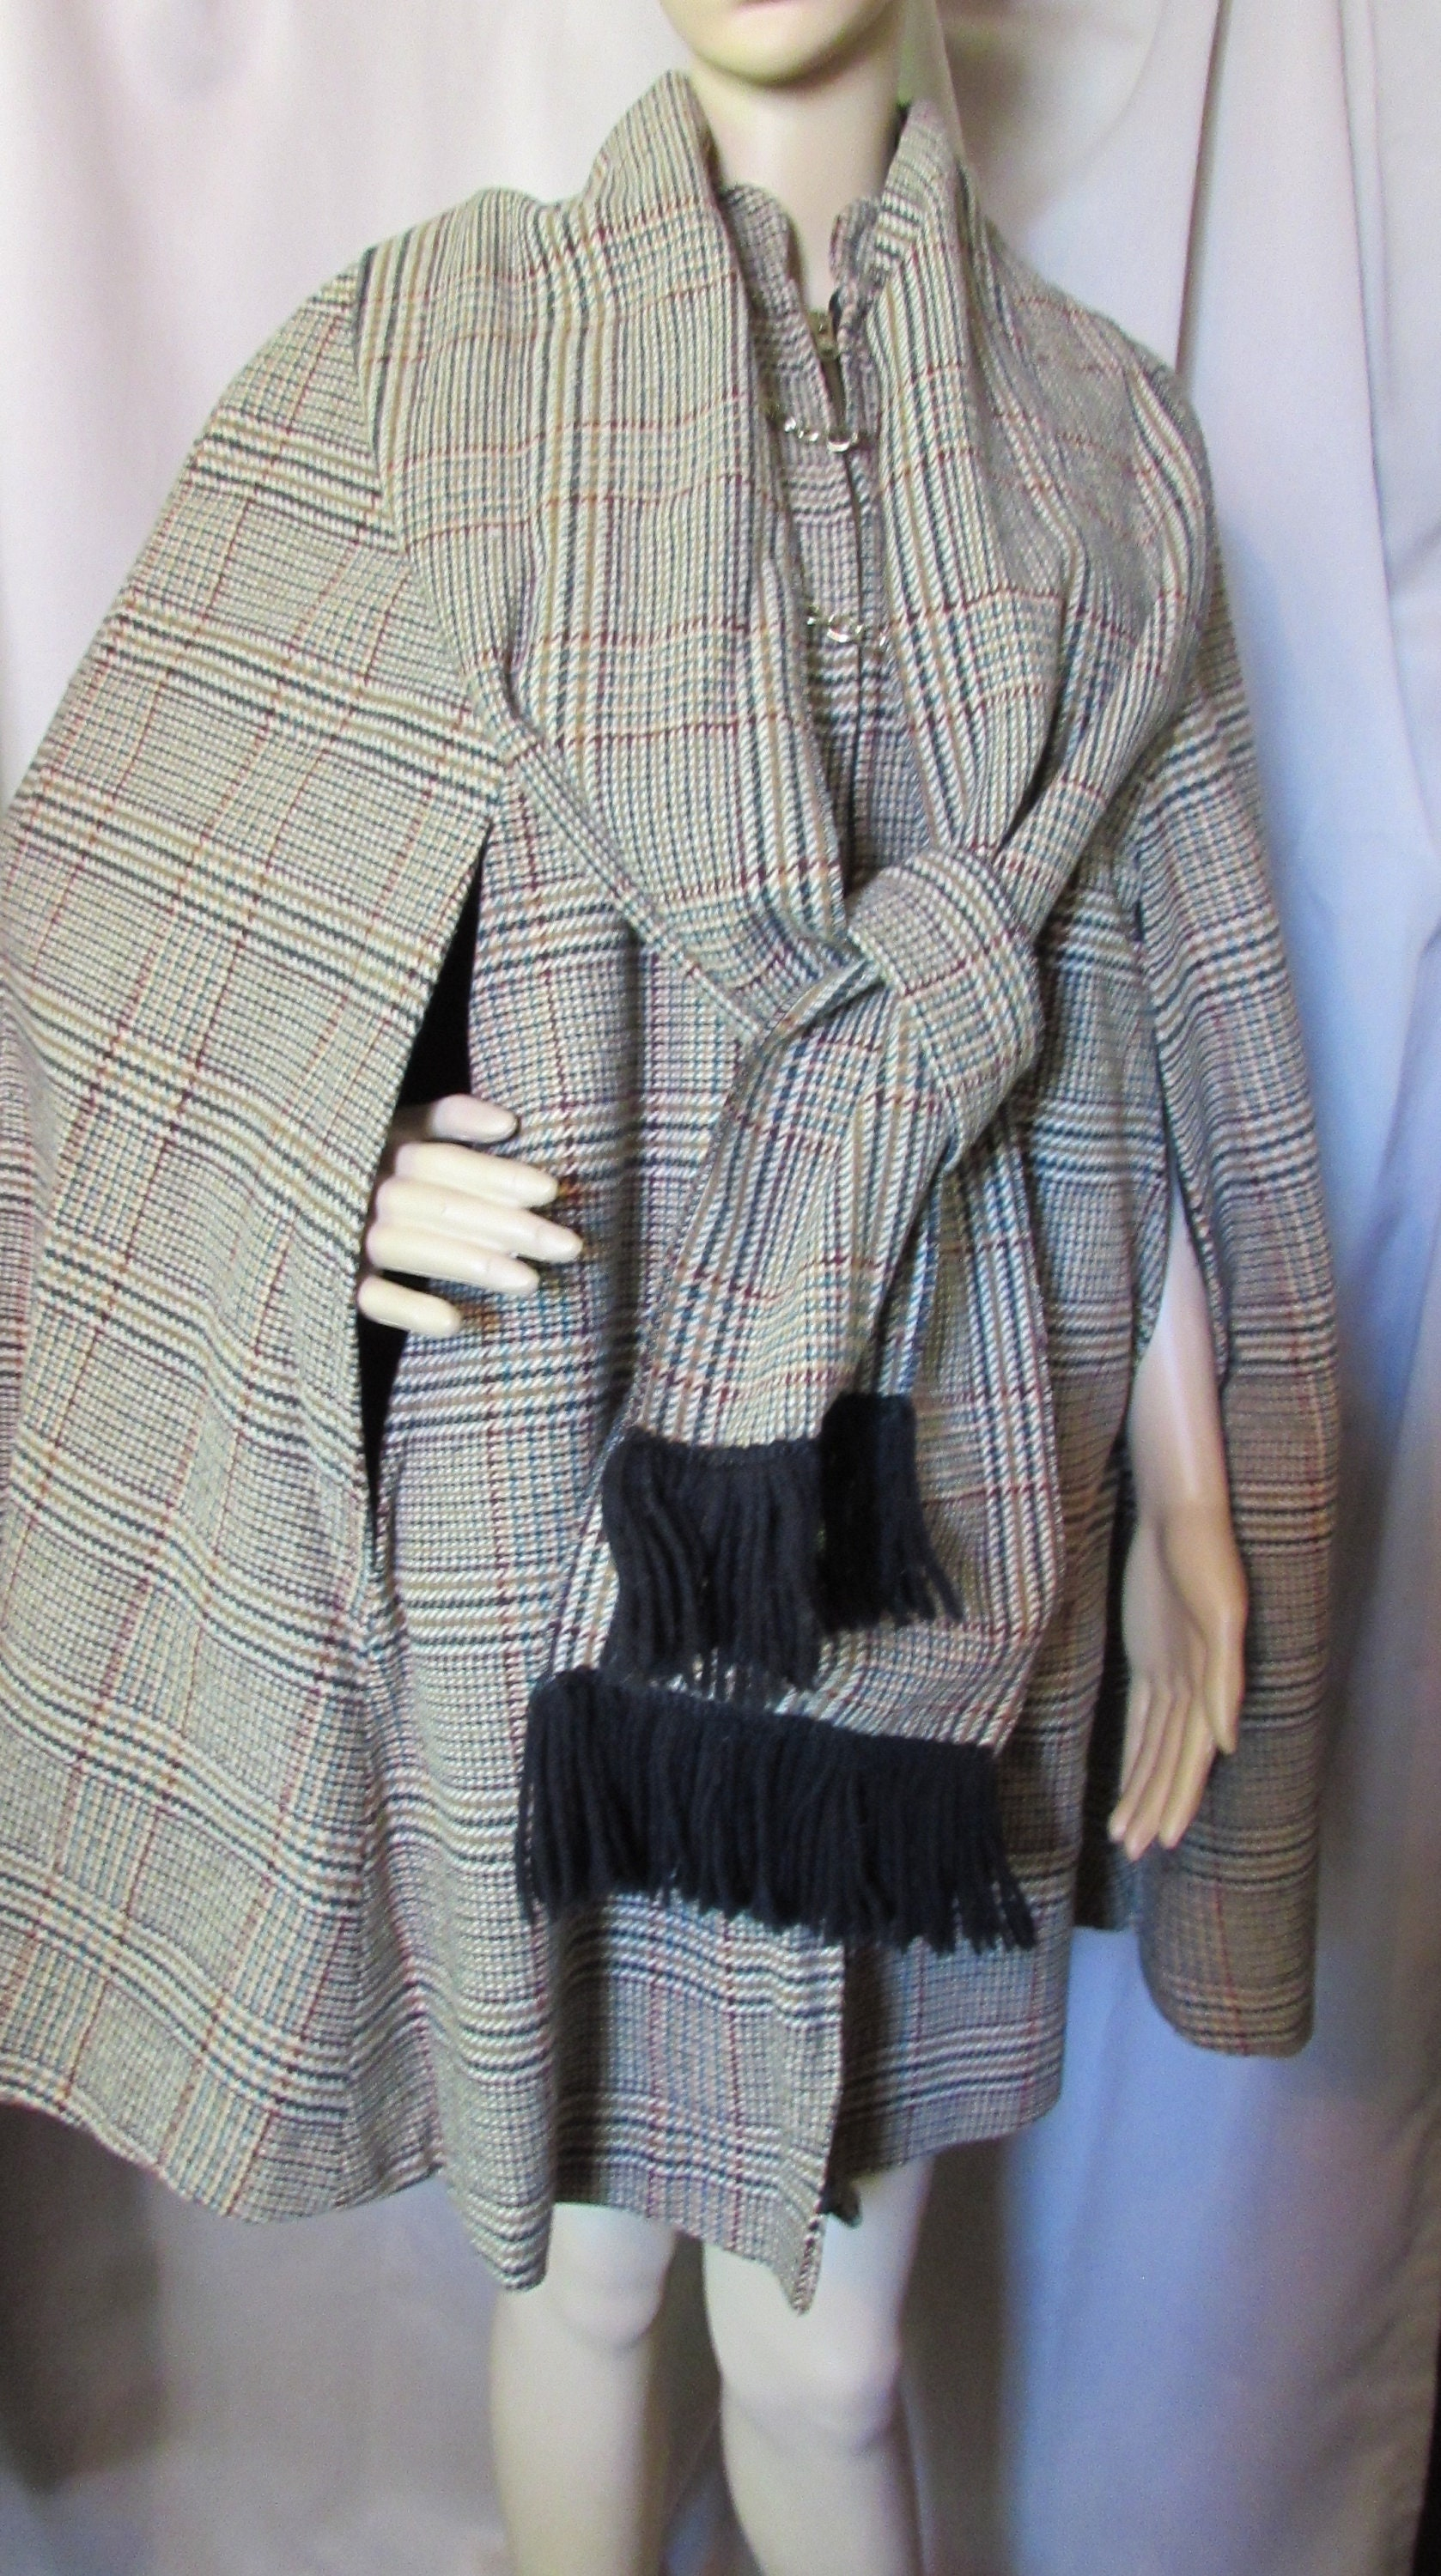 Vintage Scarf Styles -1920s to 1960s 1970 Era Cape Plaid Wool Green Brown Fringed Scarf Forest Lining Country Place Label Winter Coat Ladies Fashions $0.00 AT vintagedancer.com